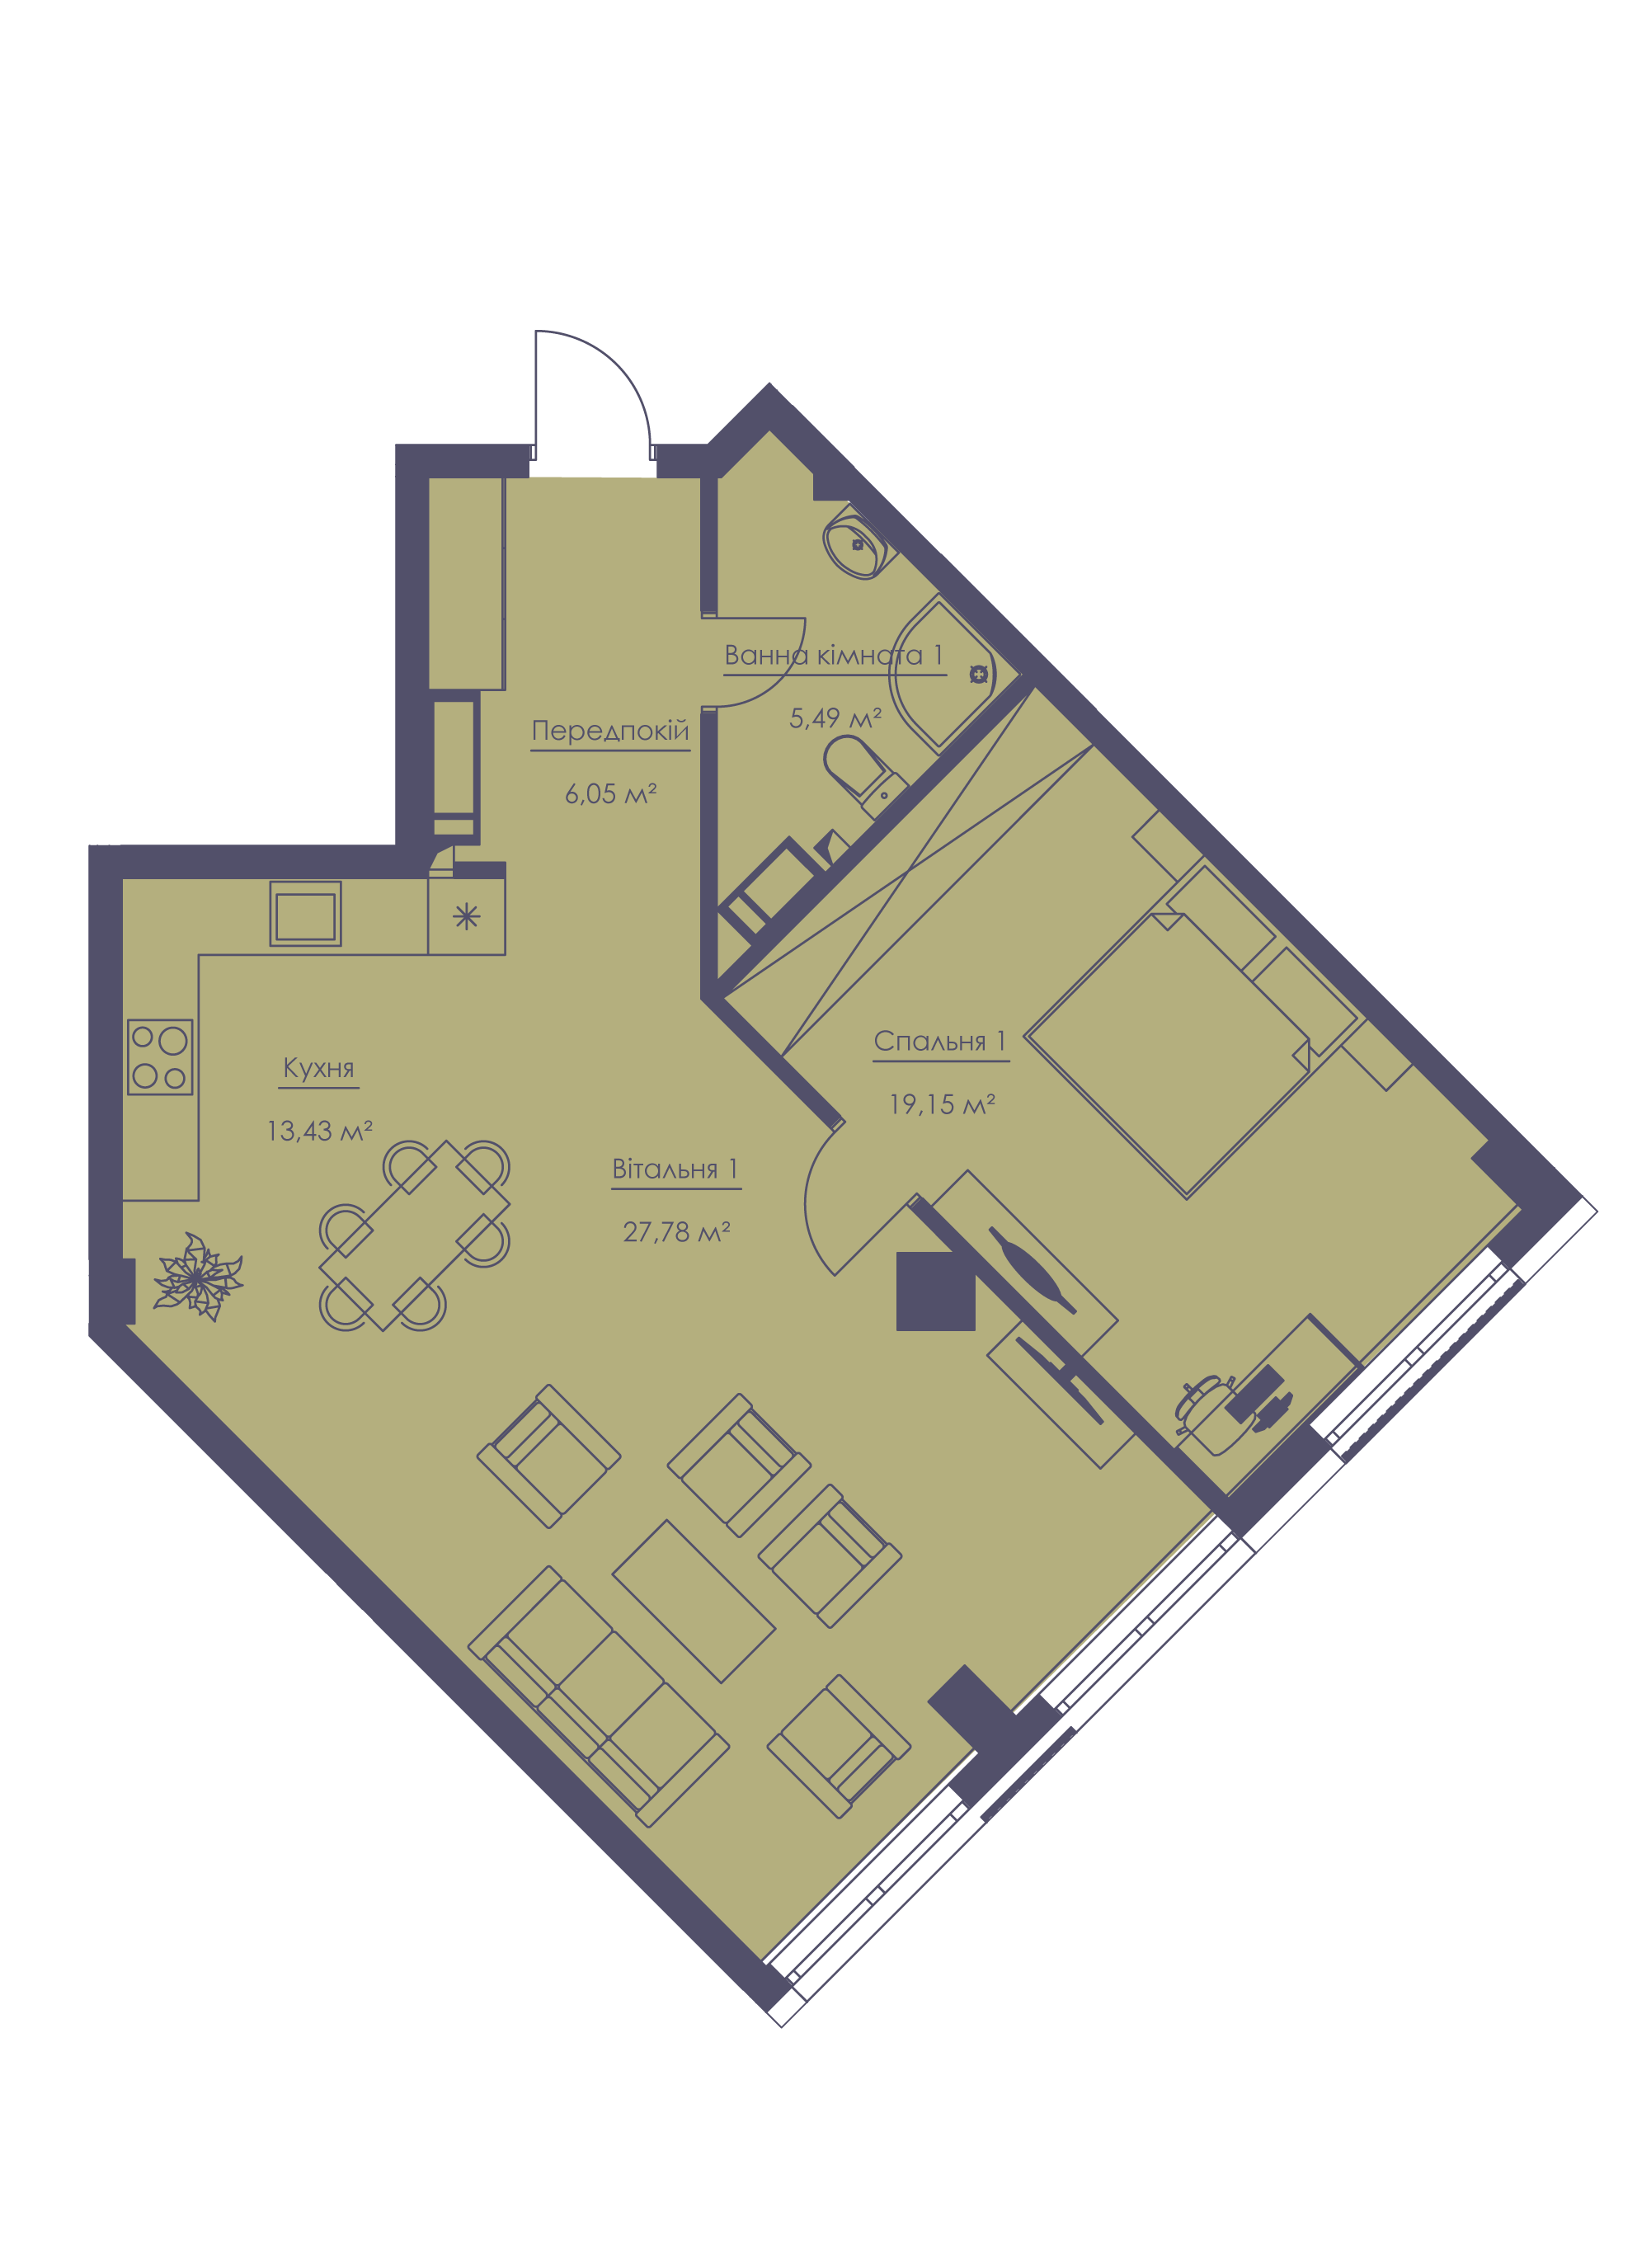 Apartment layout KV_1_1.2a_1_1_1-1